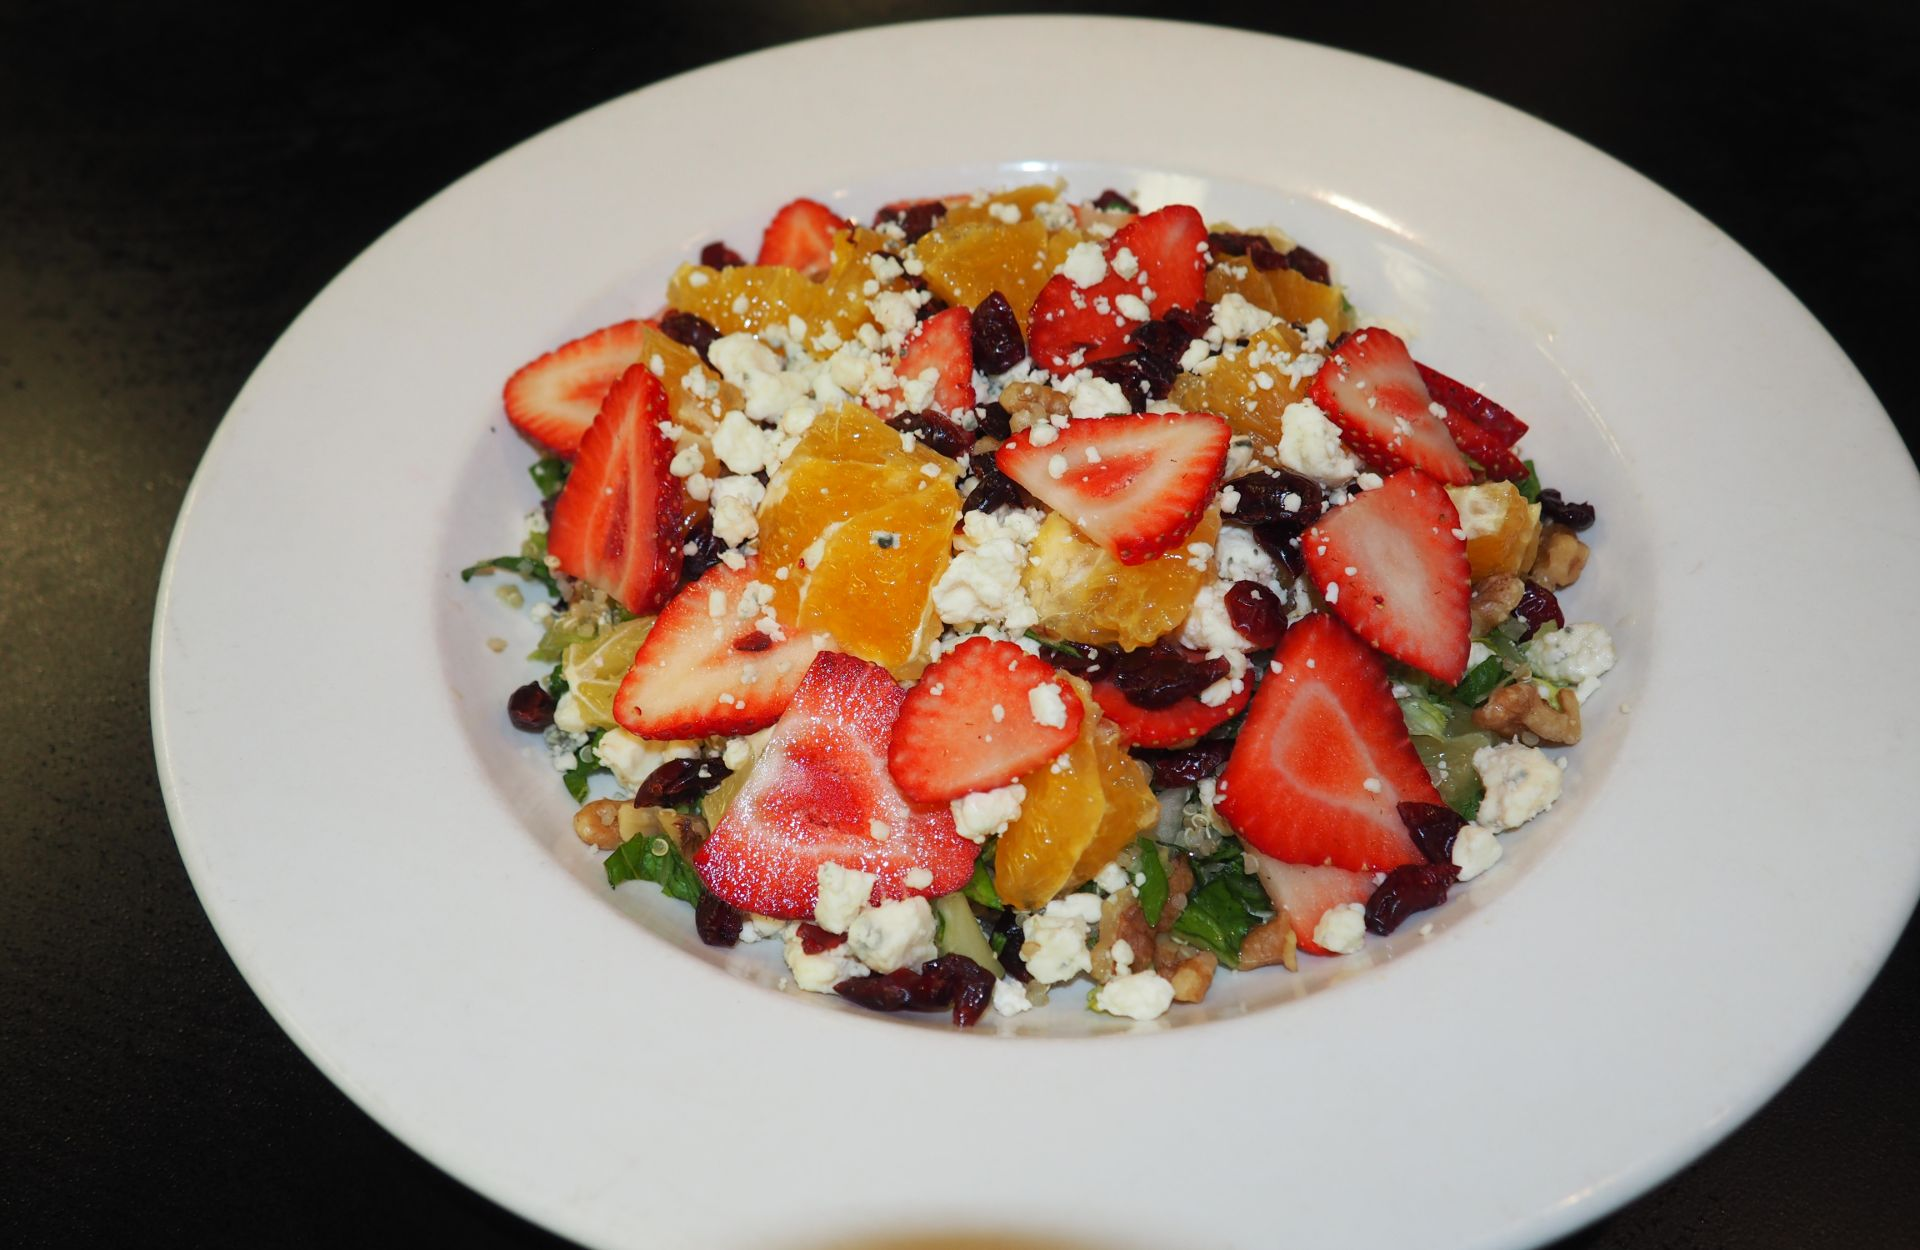 Salad with strawberries, oranges, feta and walnuts